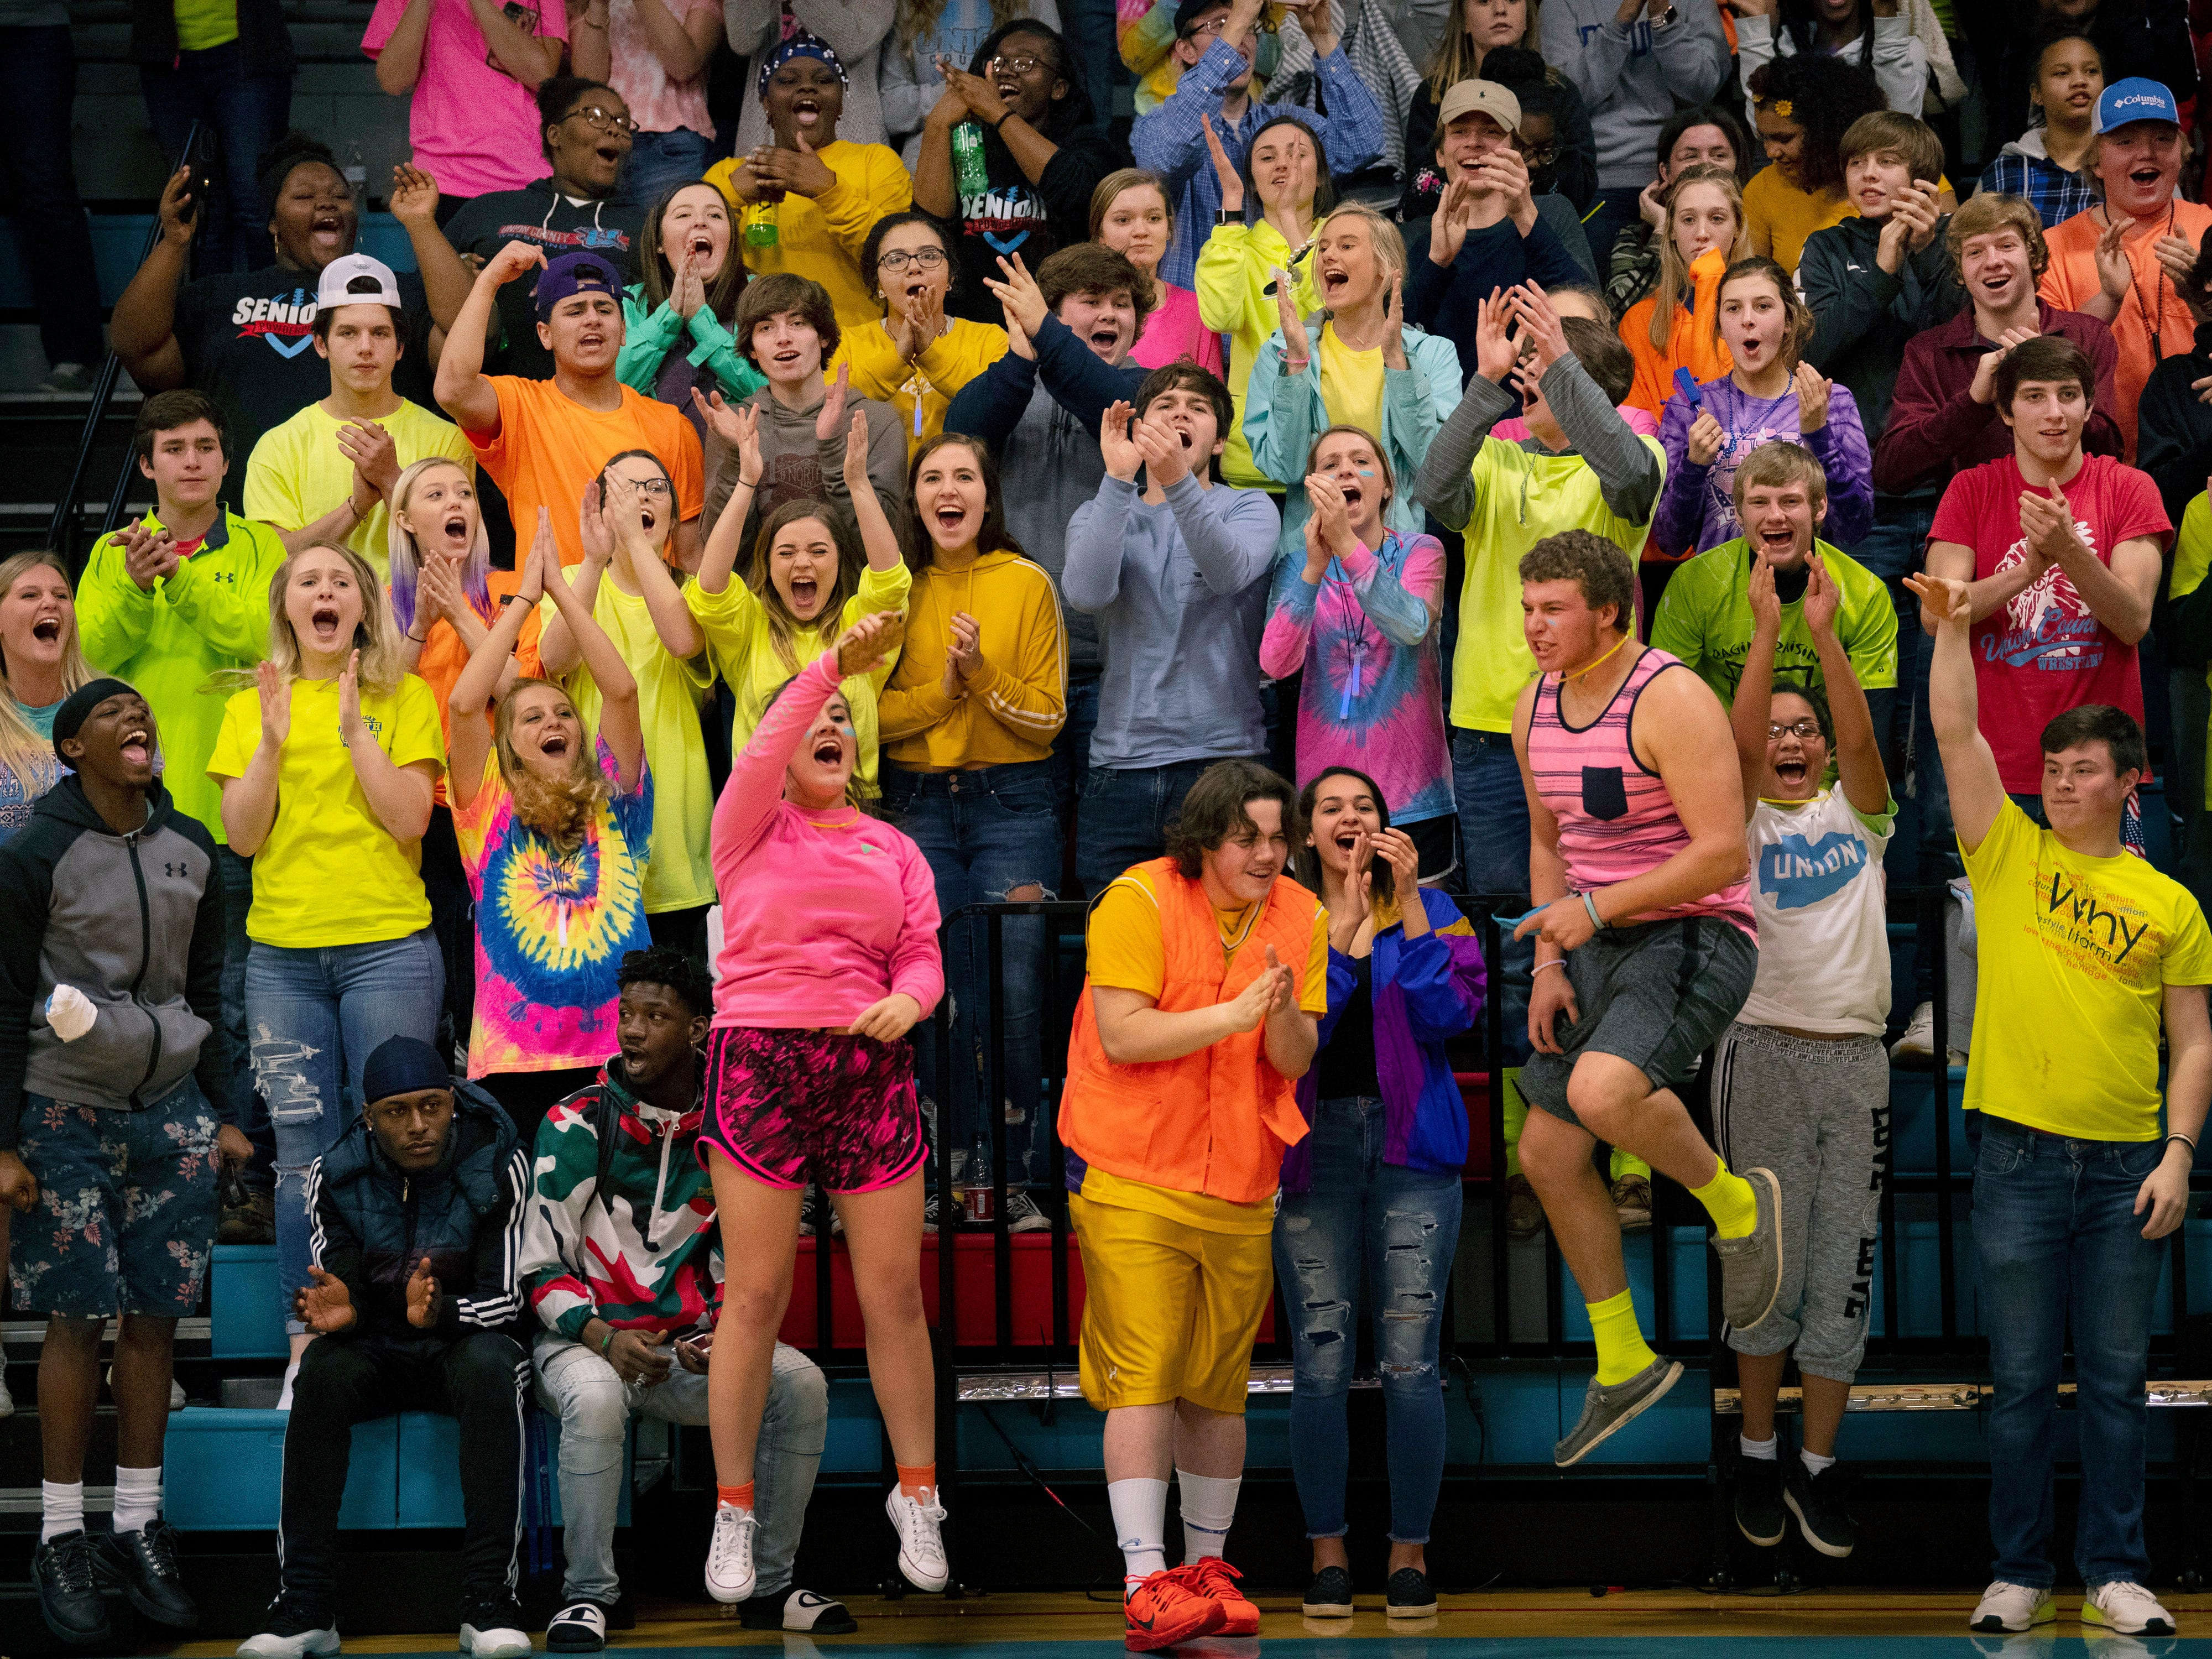 The Union County student section erupts after a big basket by their boys basketball team salted away the game against Henderson County at Union County High School Monday night. The Braves snapped their 16-game losing streak against the Colonels.